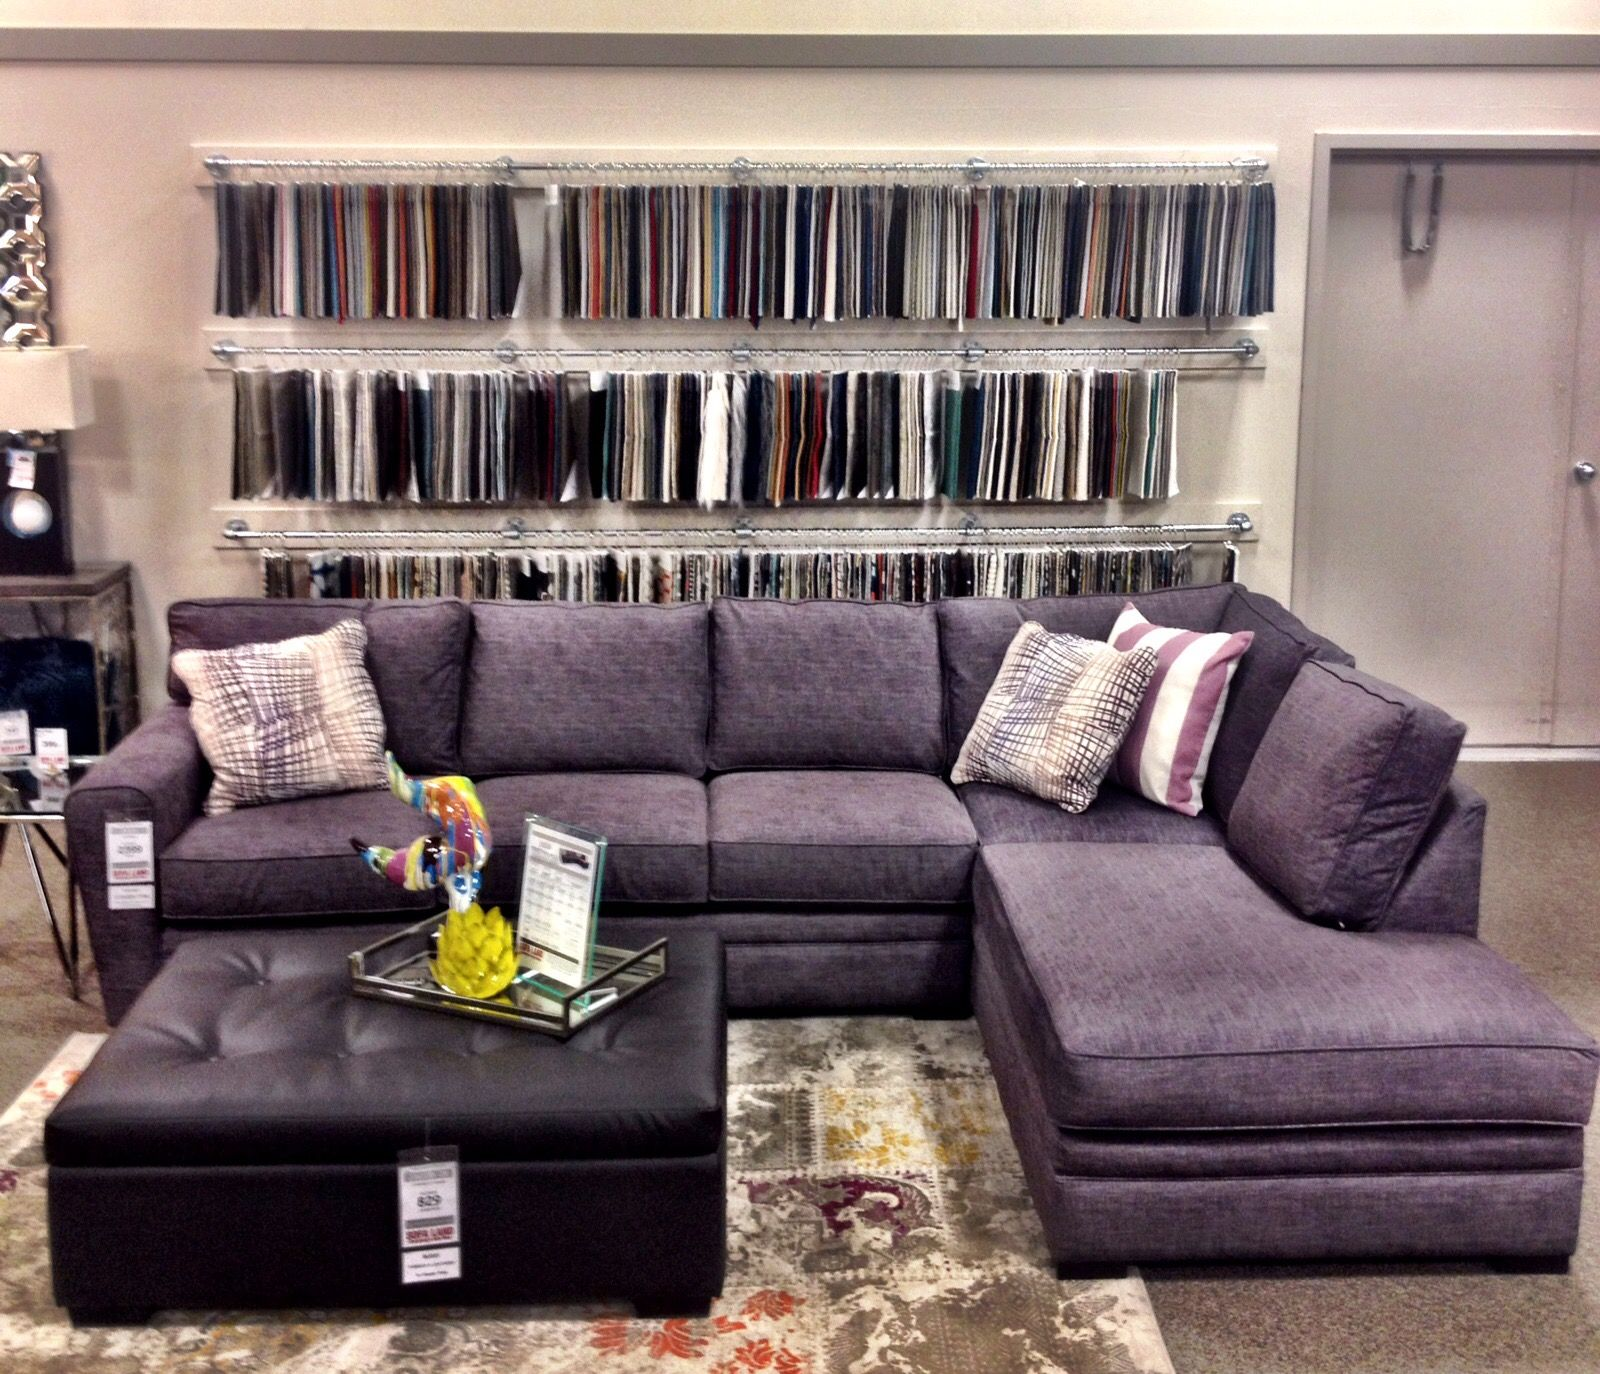 Sitting Pretty Sofas Fabric Sofa Protection Spray The Jadas In Front Of Our New Jonathan